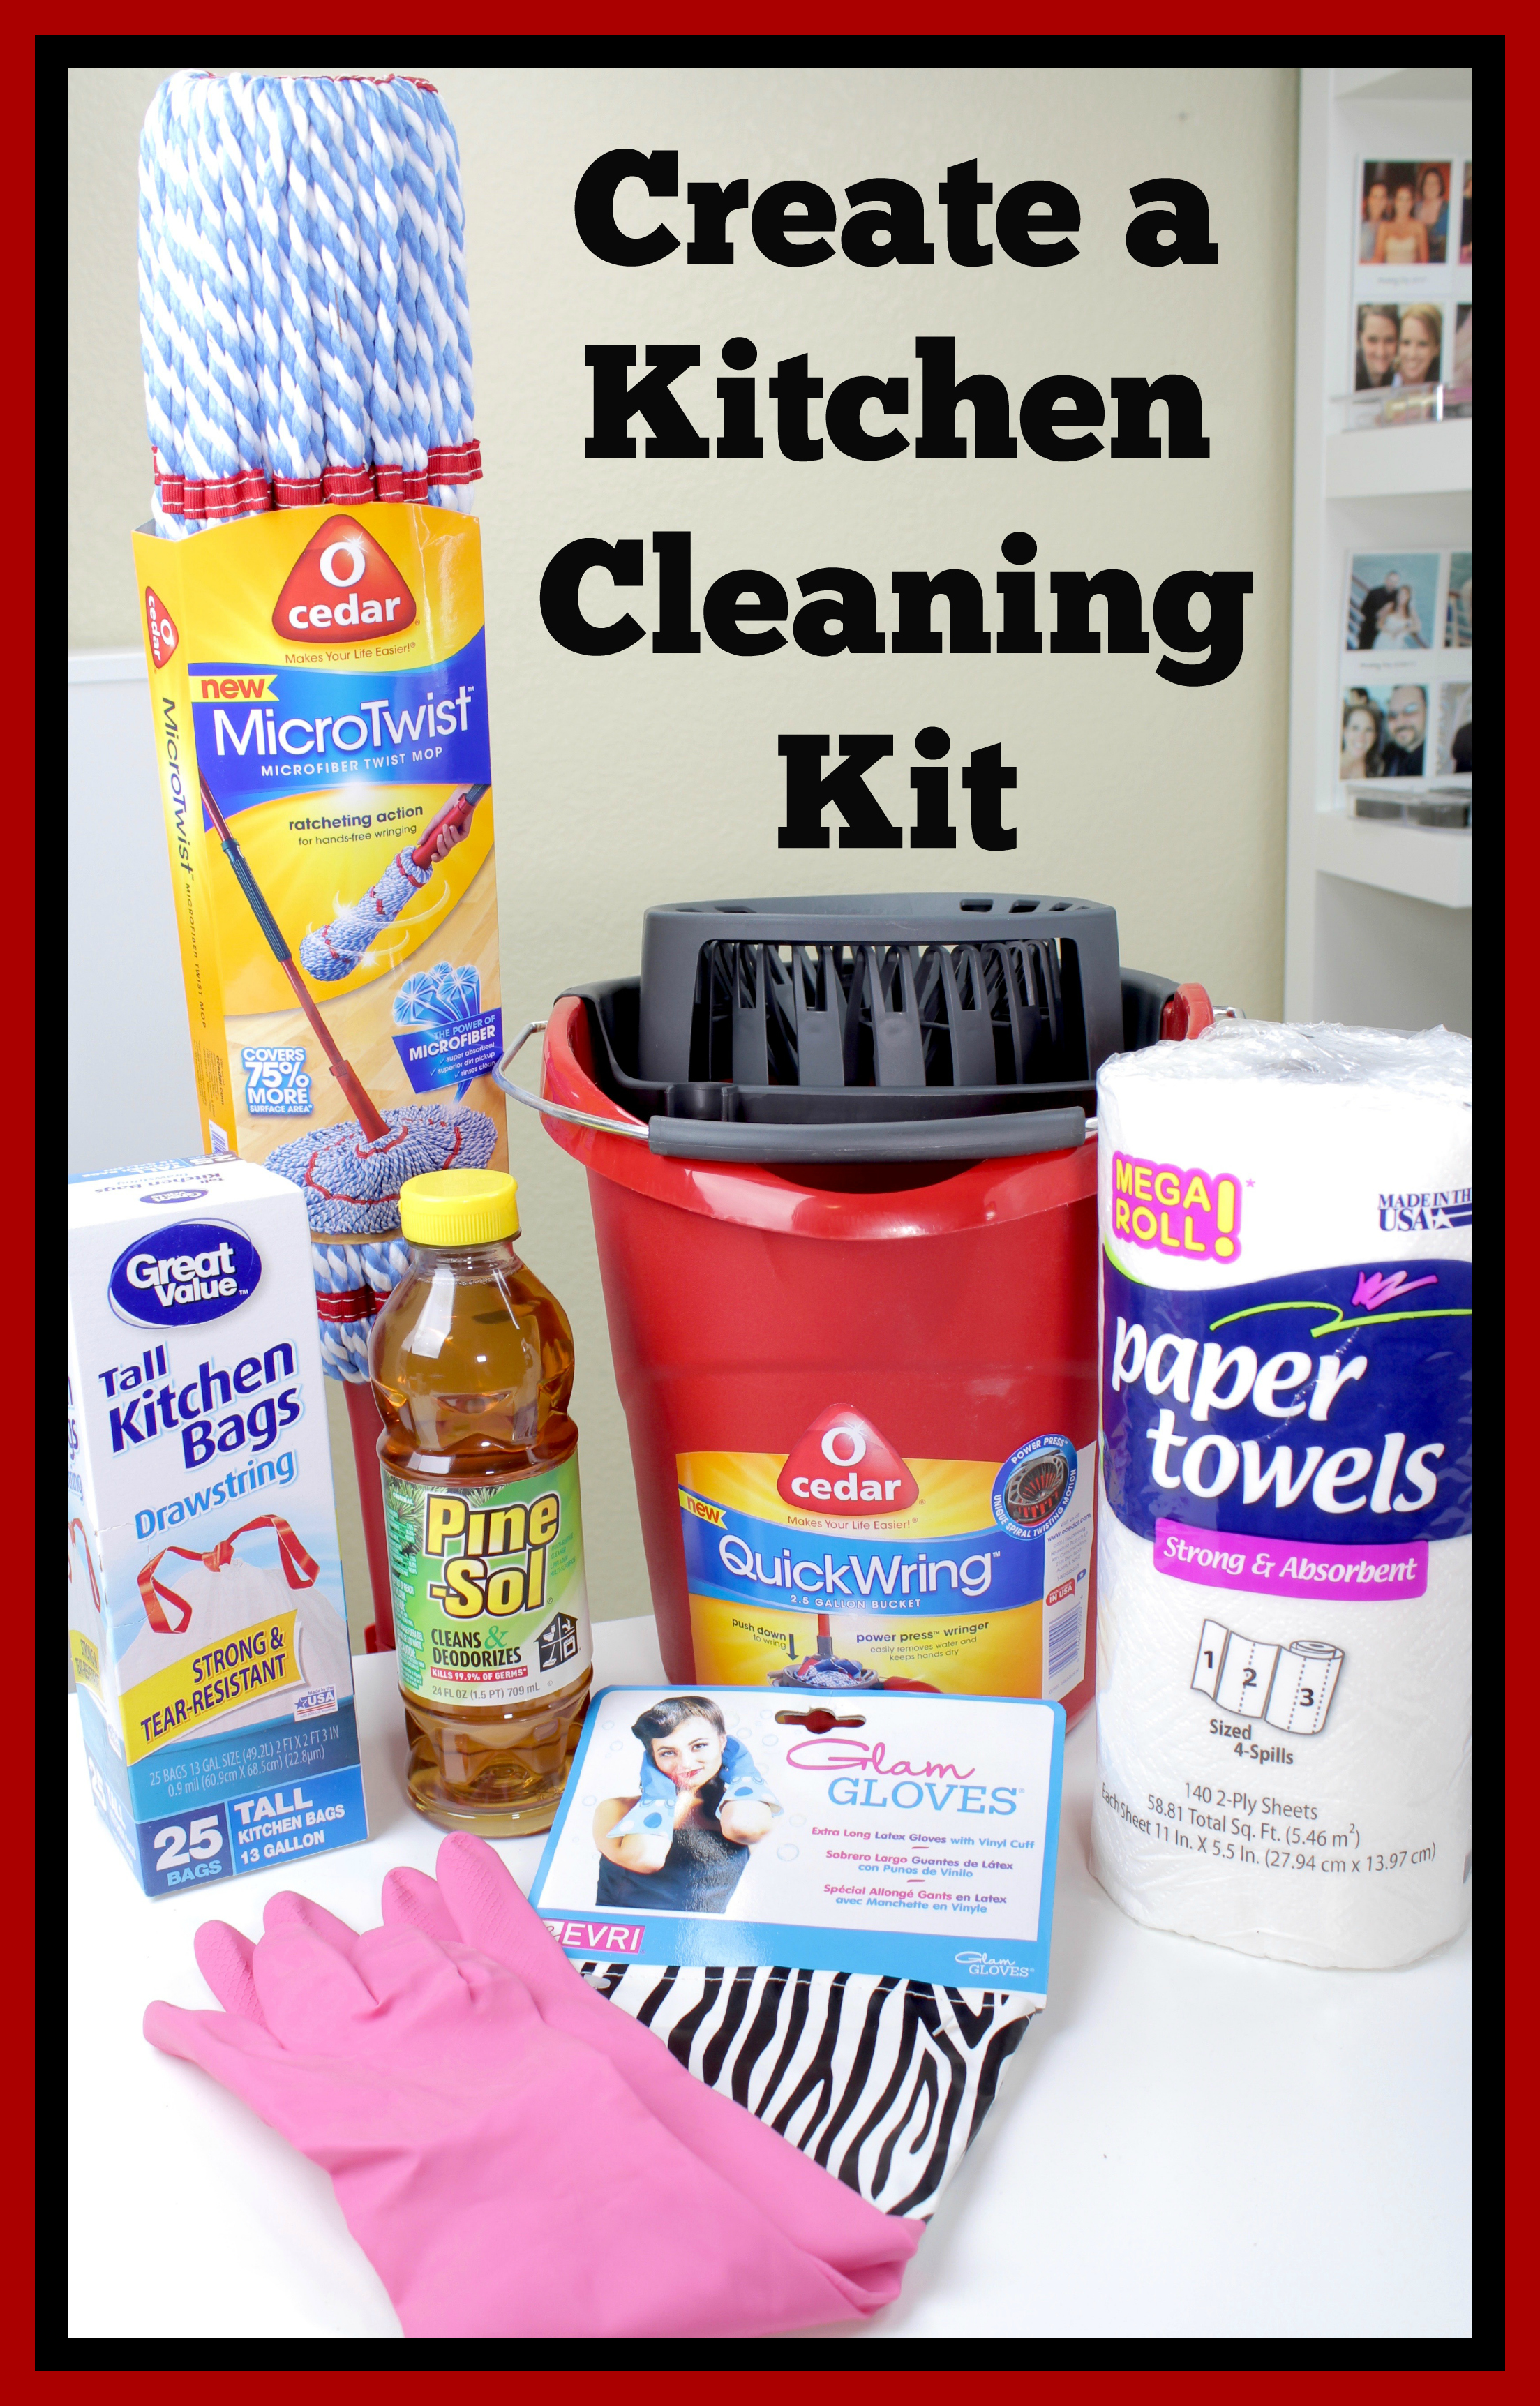 #DoTheMicroTwist #DIY #Cleaning #ad